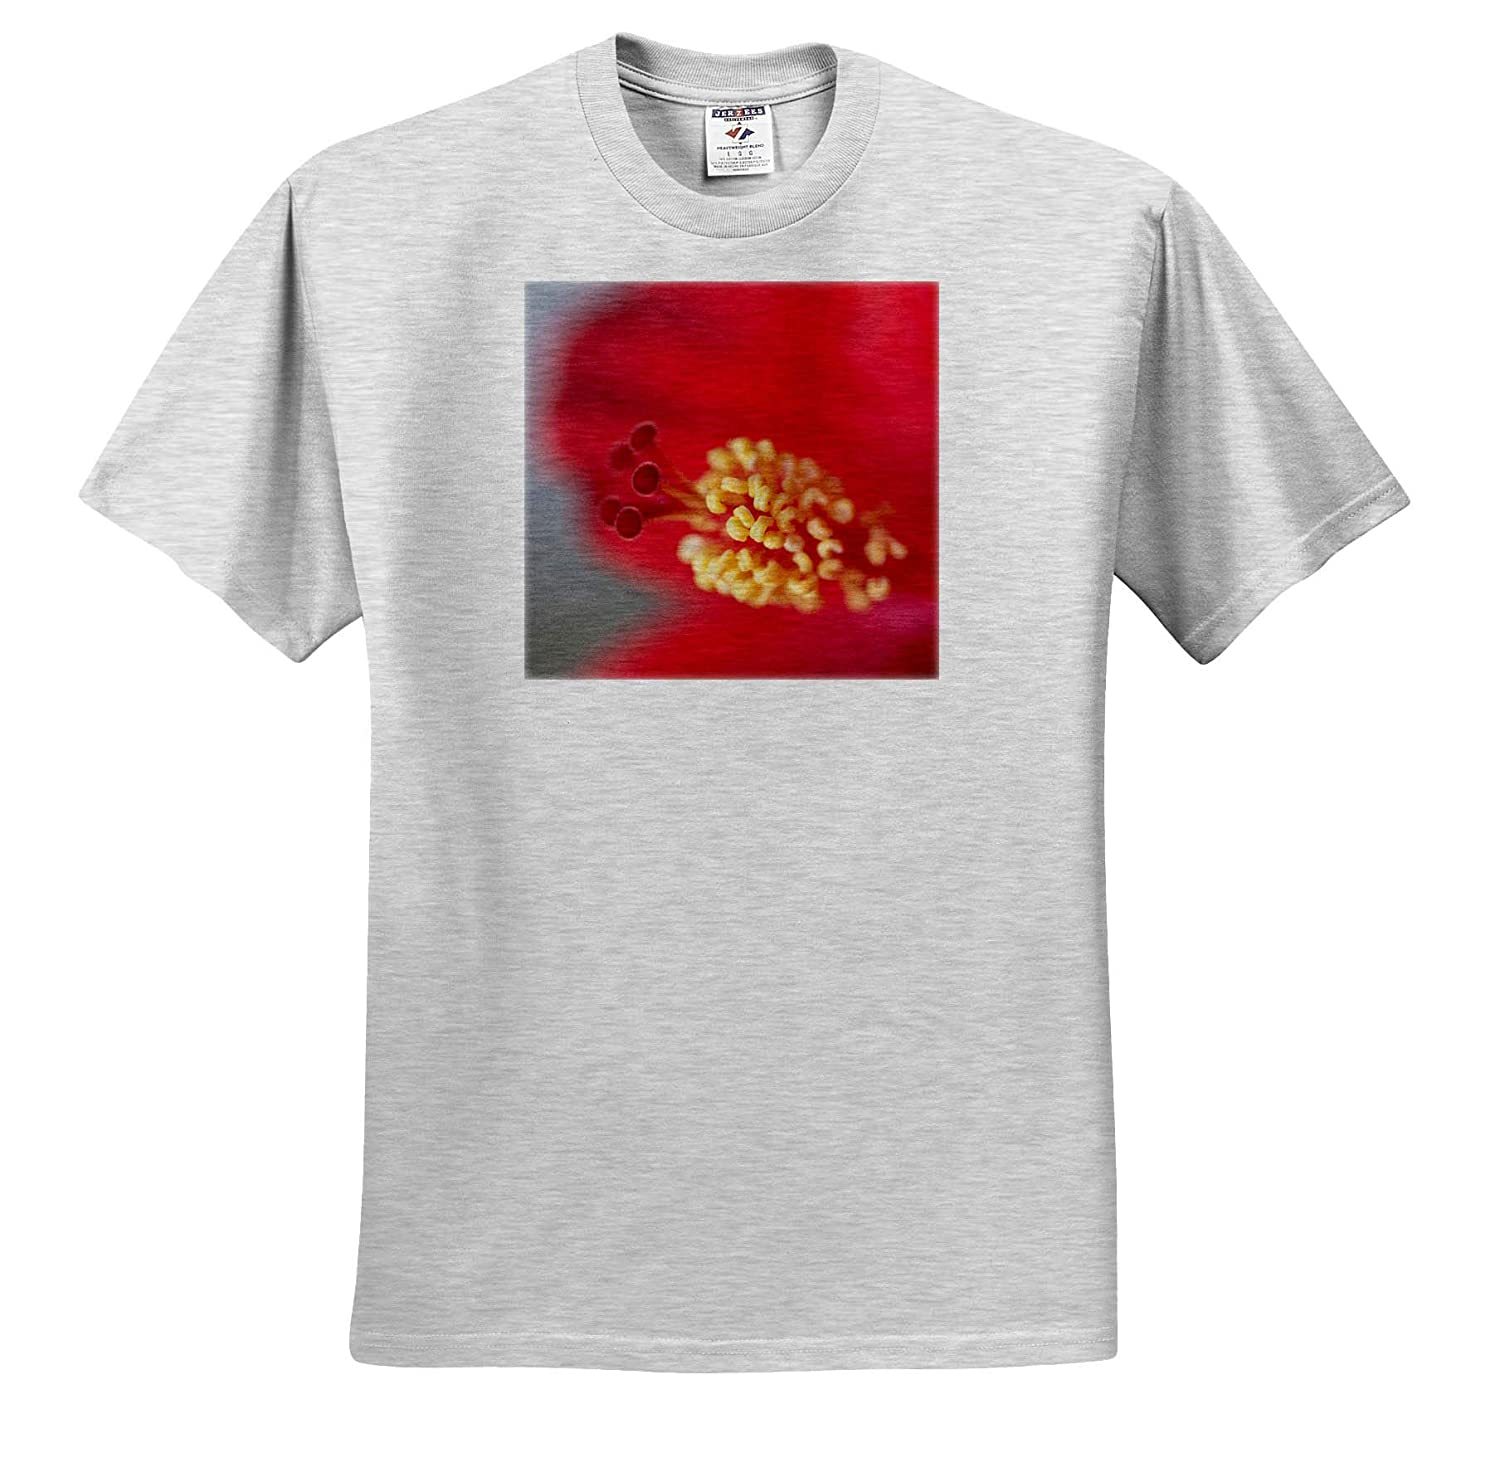 ts/_314773 Adult T-Shirt XL Flowers Close-up of red Hibiscus Flowering 3dRose Danita Delimont